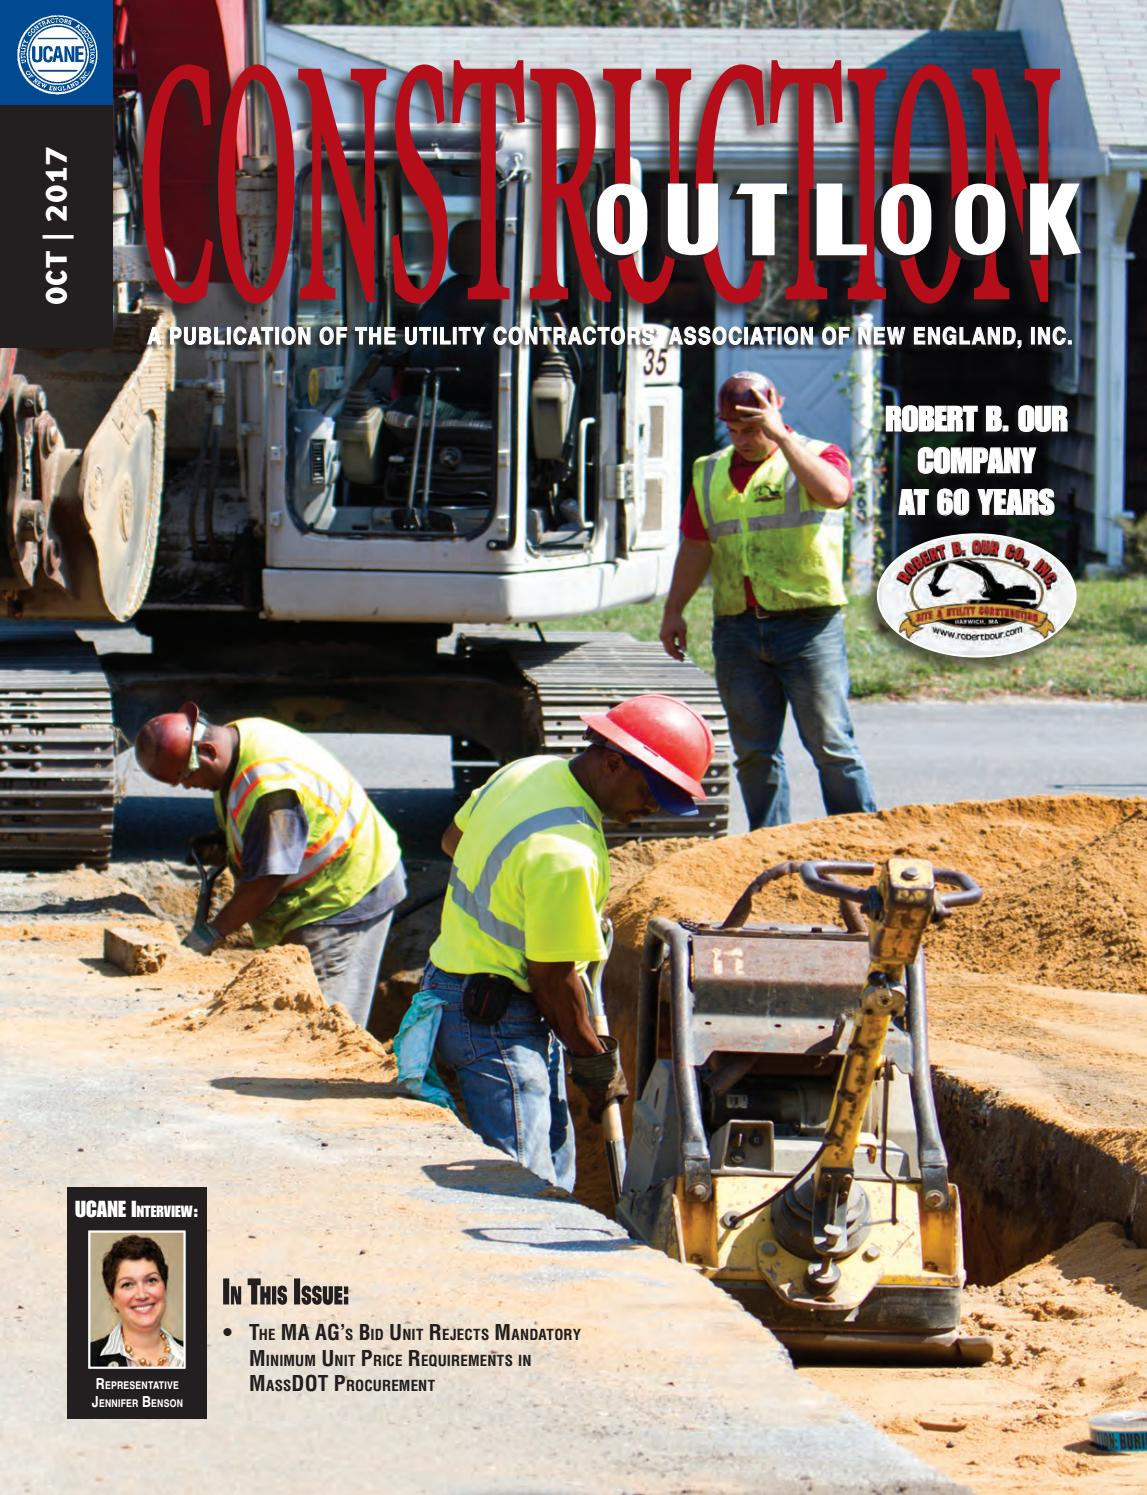 Construction Outlook October 2017 by Ucane - issuu